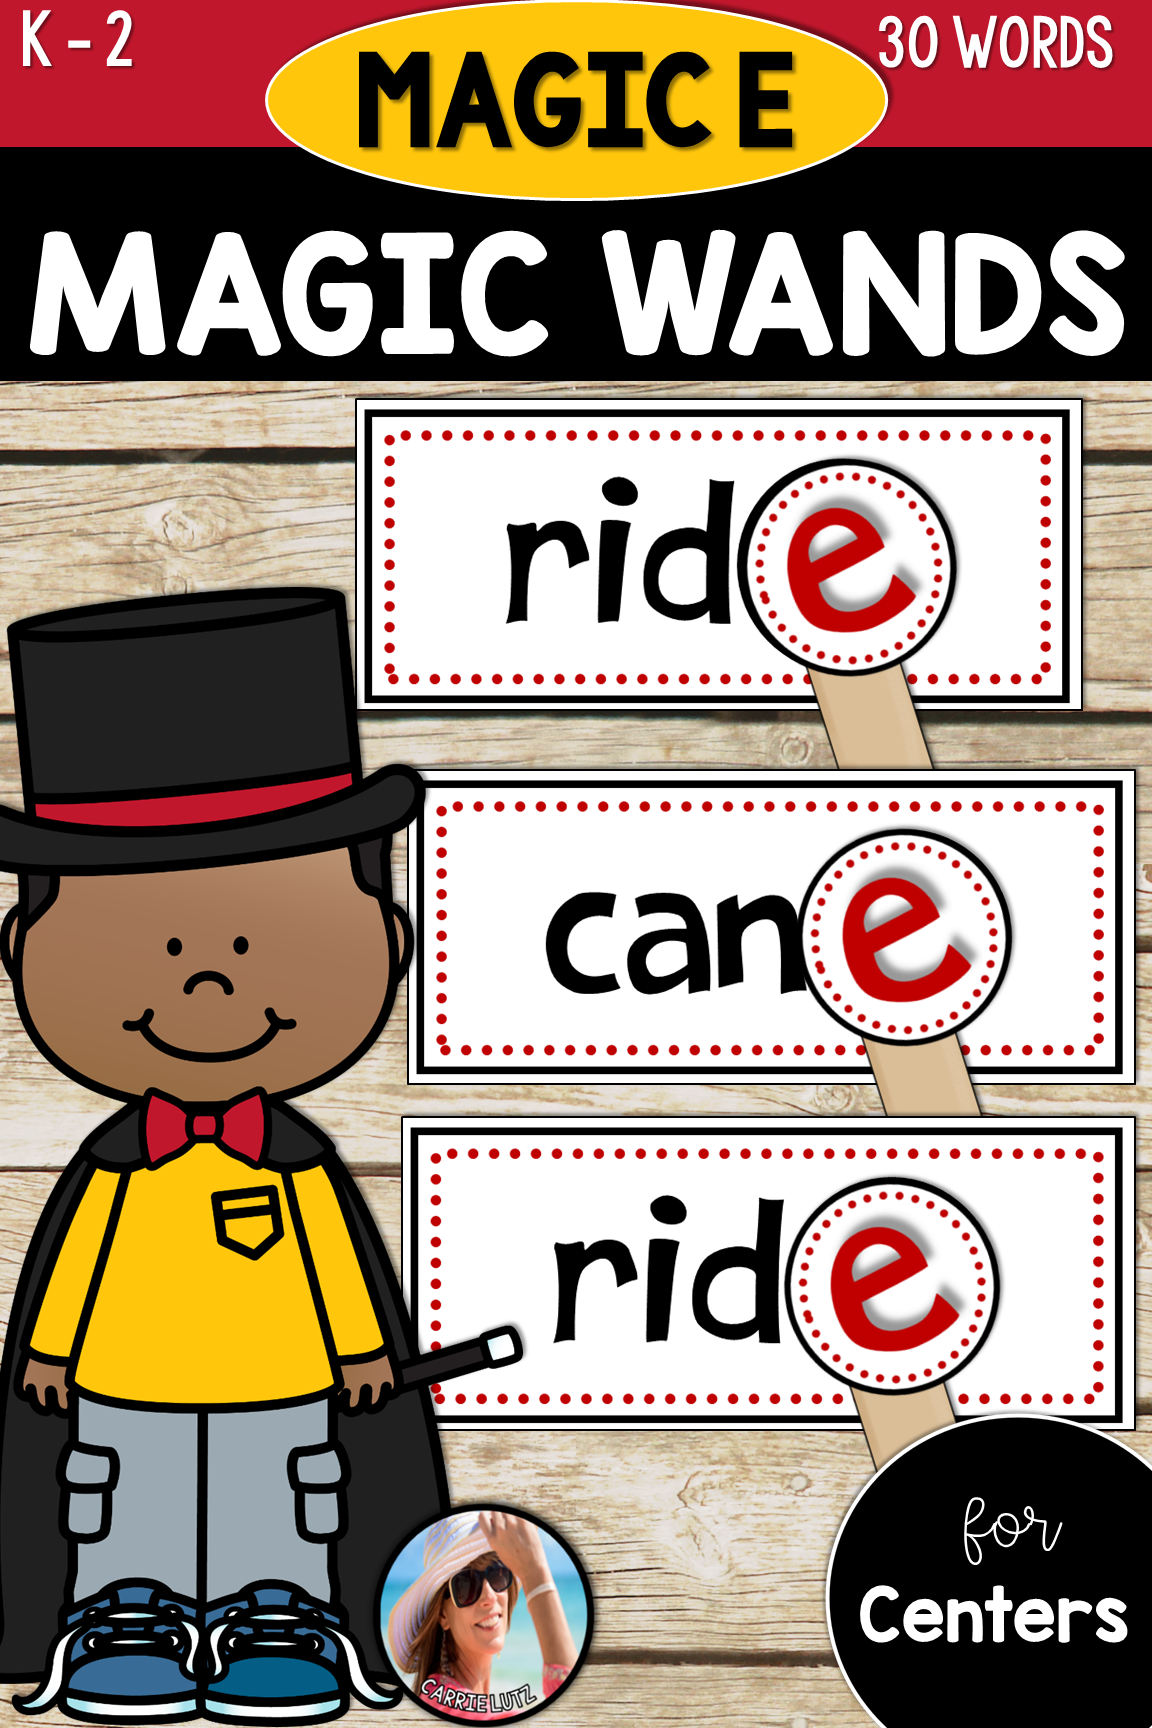 Magic E Magic Wands